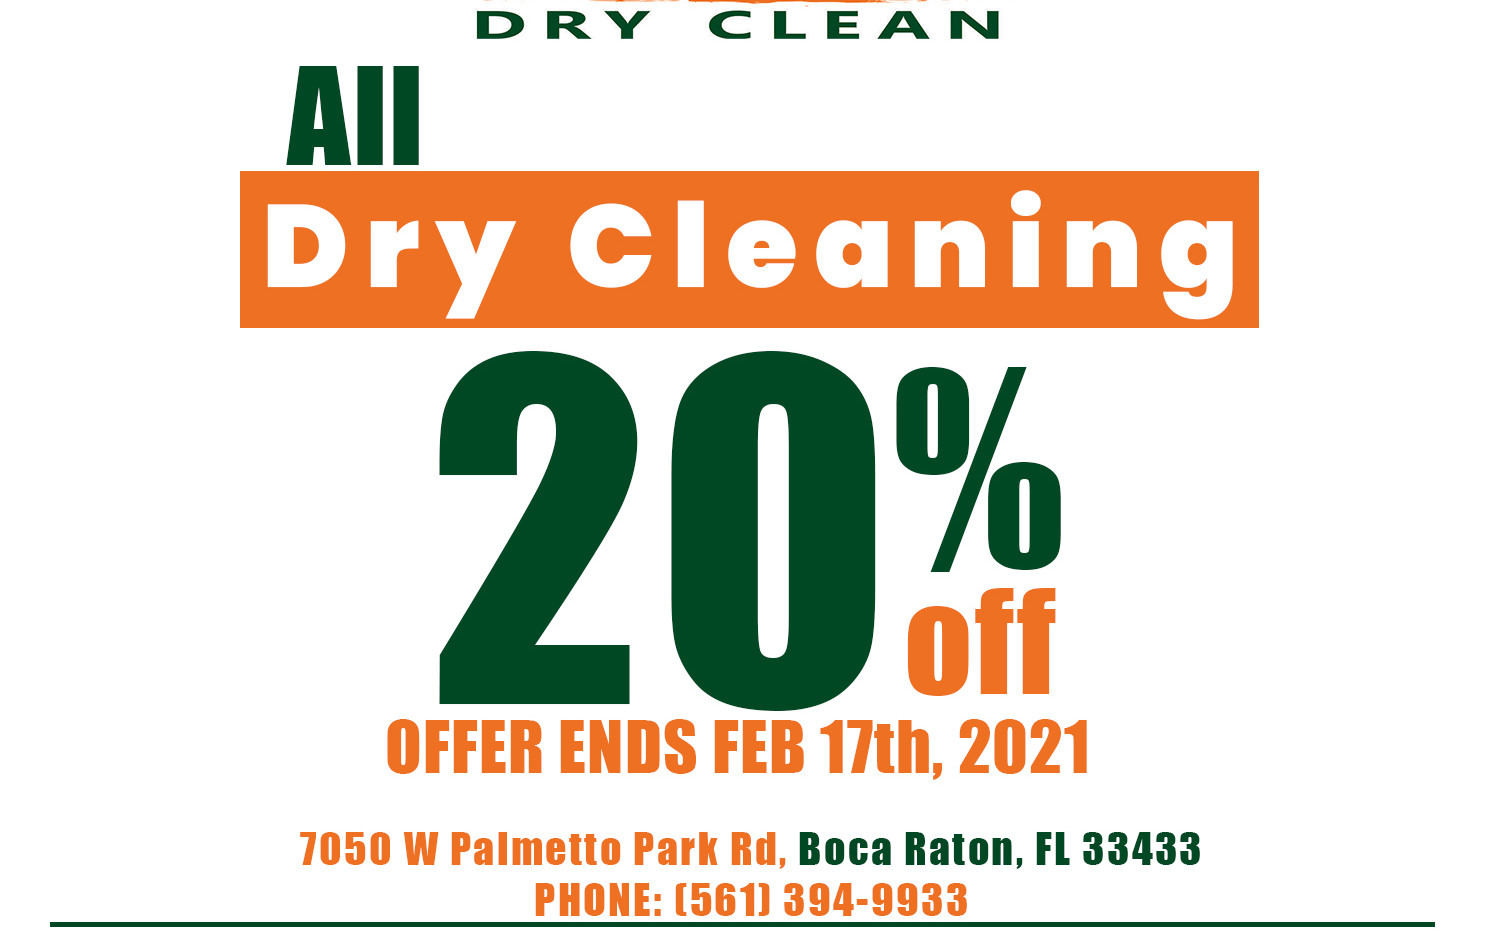 DryCleaningCouponBocaFEB2021.jpg